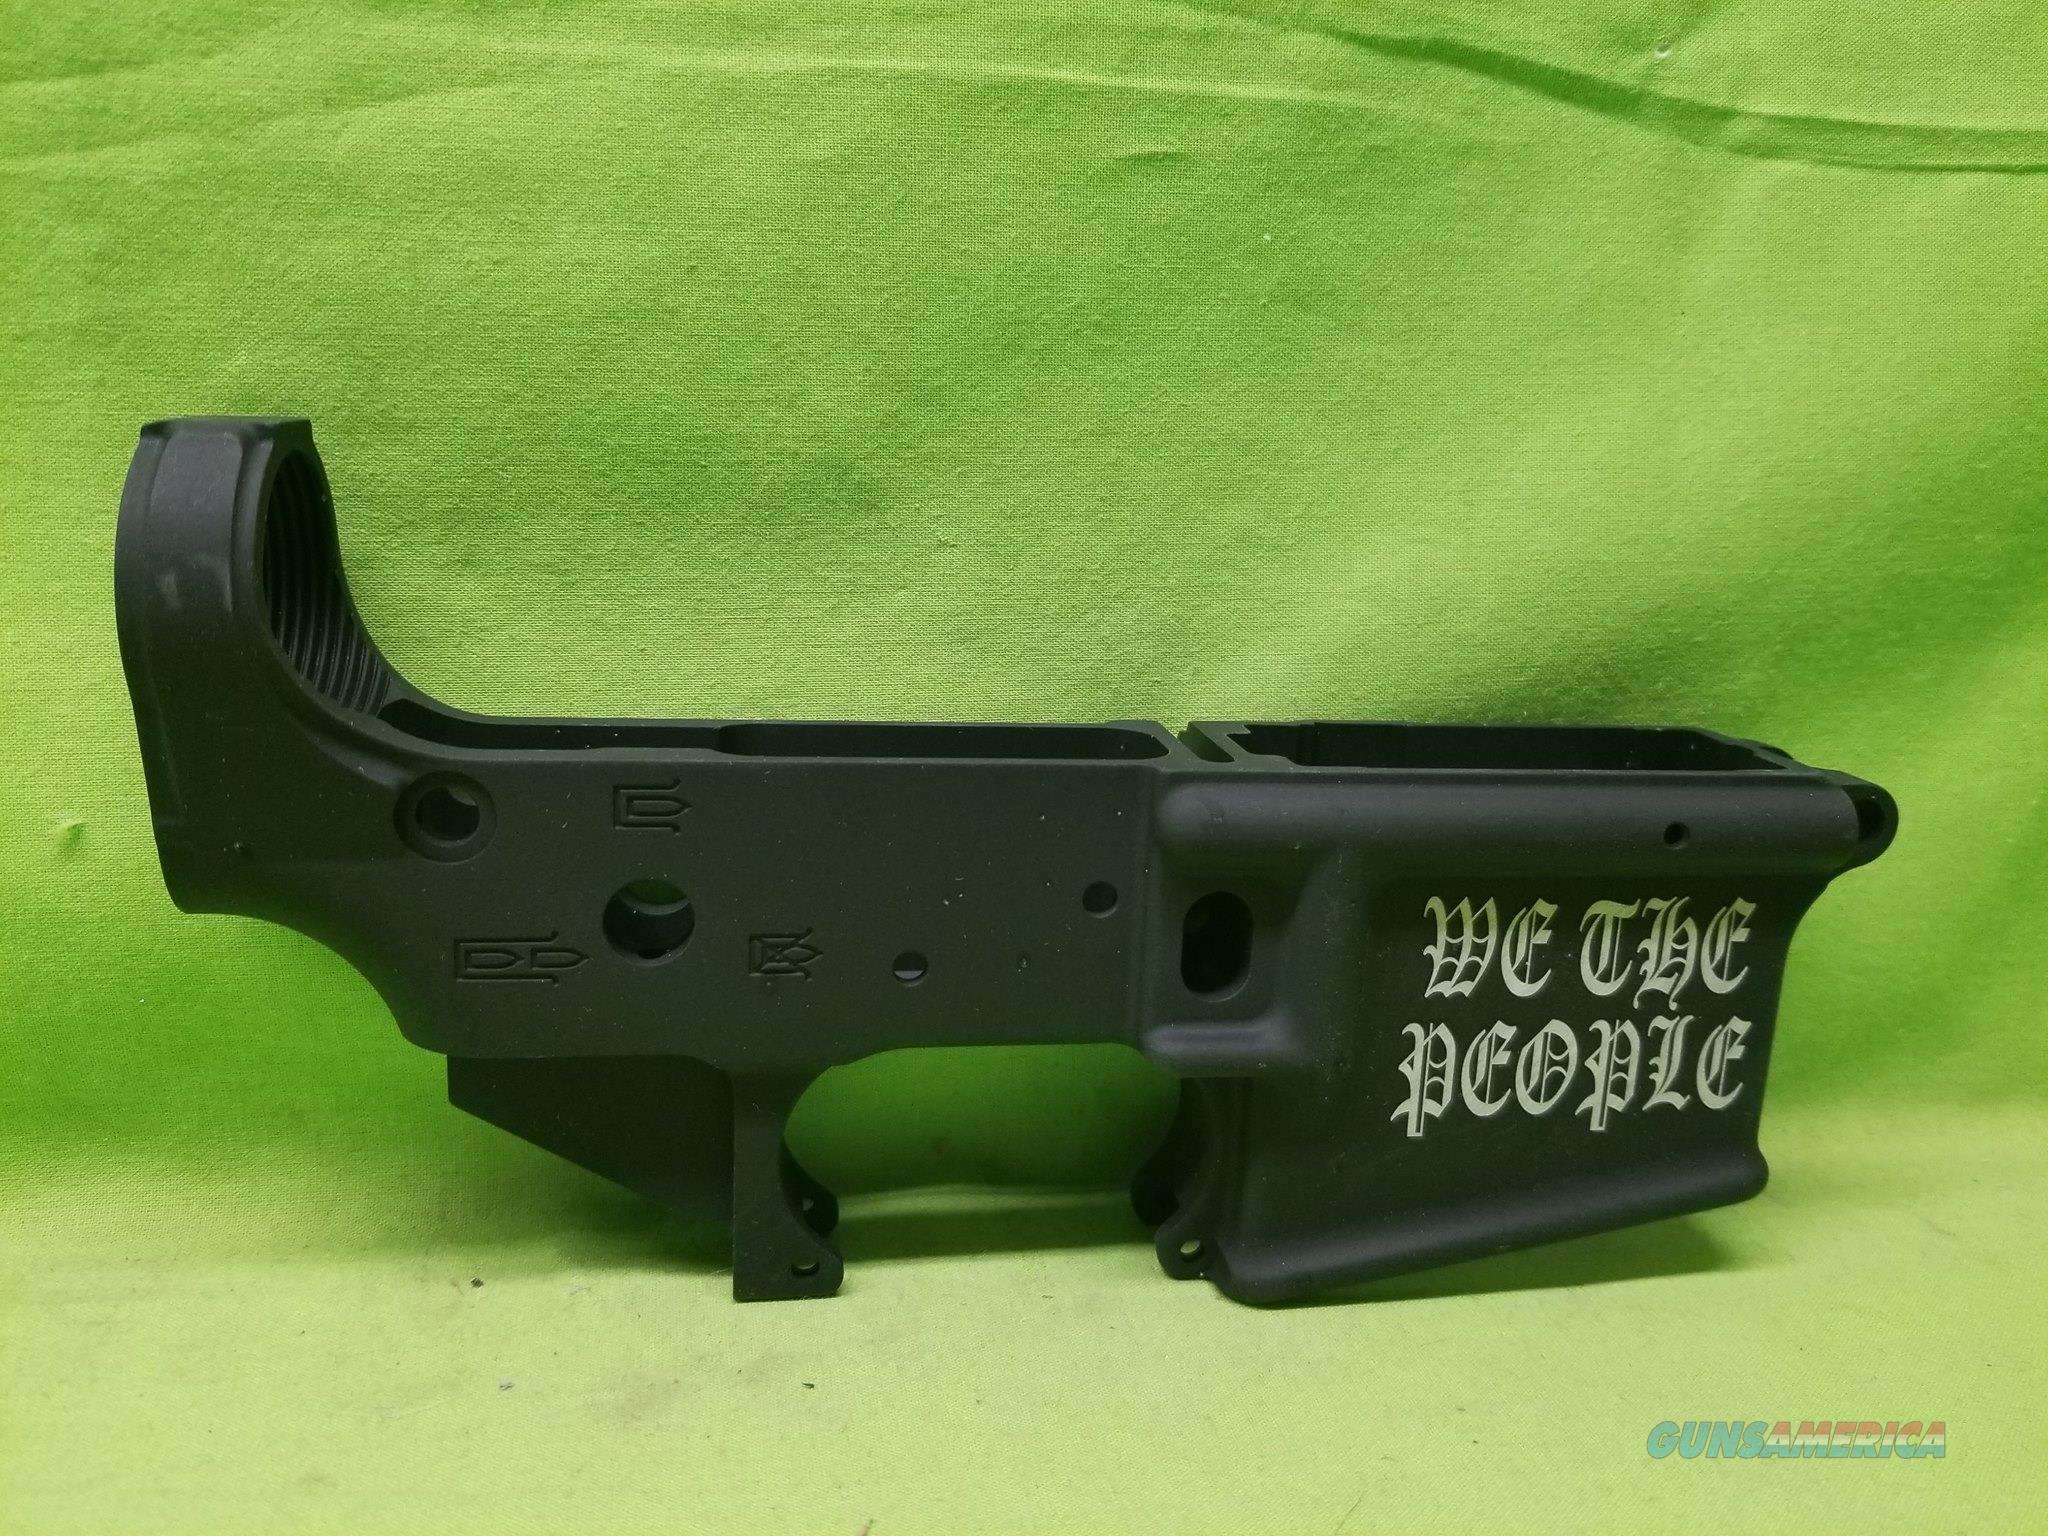 AATACTICAL TAC-L WING STRIPPED LOWER WE THE PEOPLE  Guns > Rifles > AR-15 Rifles - Small Manufacturers > Lower Only